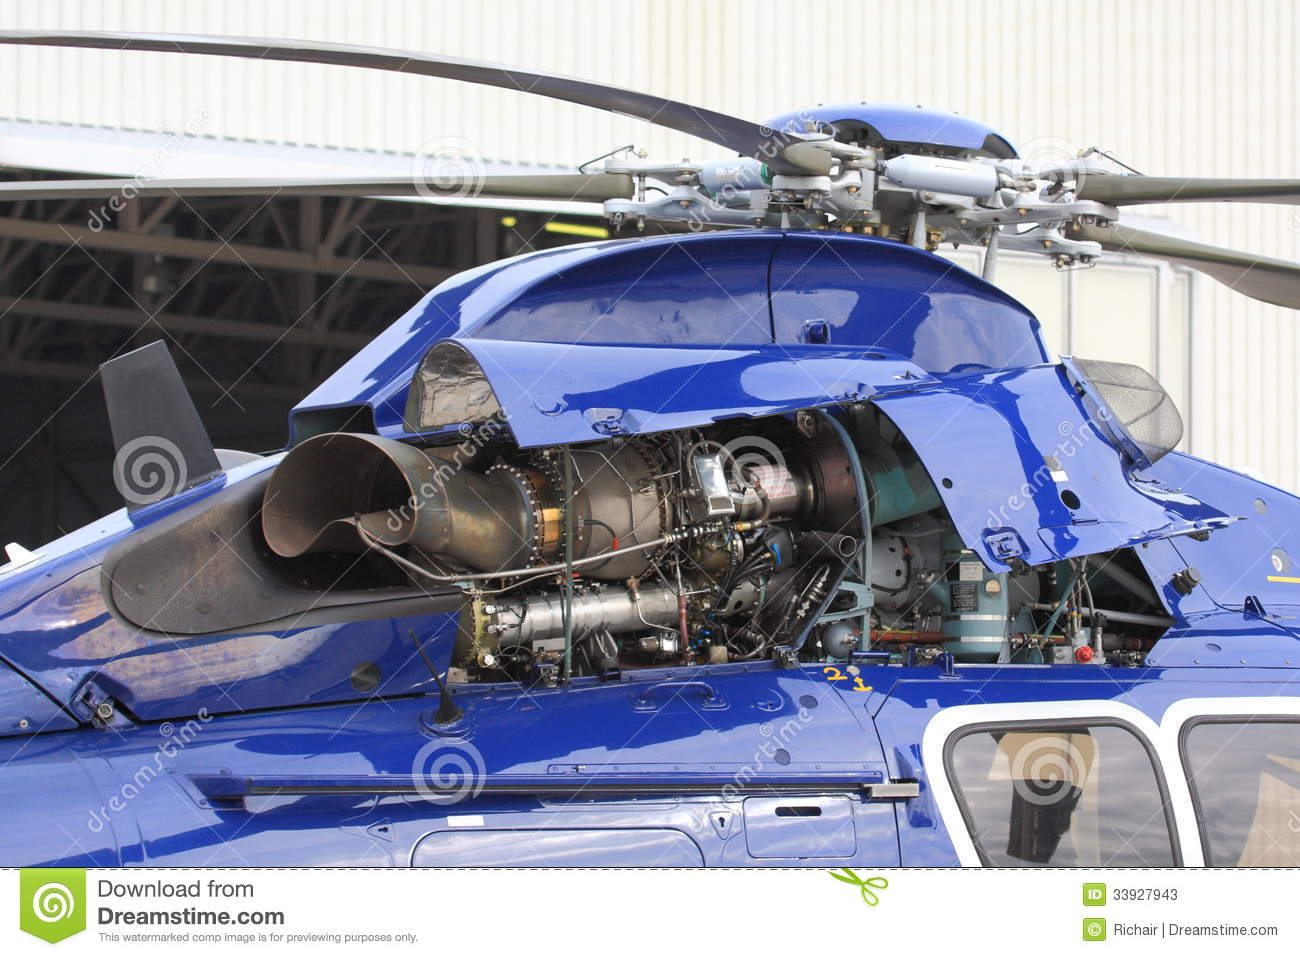 how work helicopter with Stock Photos Helicopter Turbine Engine Gas Cowling Opened Image33927943 on File B 1 High Speed also Vip Airport Transfer furthermore AH 64E APACHE GUARDIAN 509905096 likewise File Boeing MH 47G Heavy Assault Helicopter  7626799116   2 likewise File Mil V 12 Mi 12  8912029311.